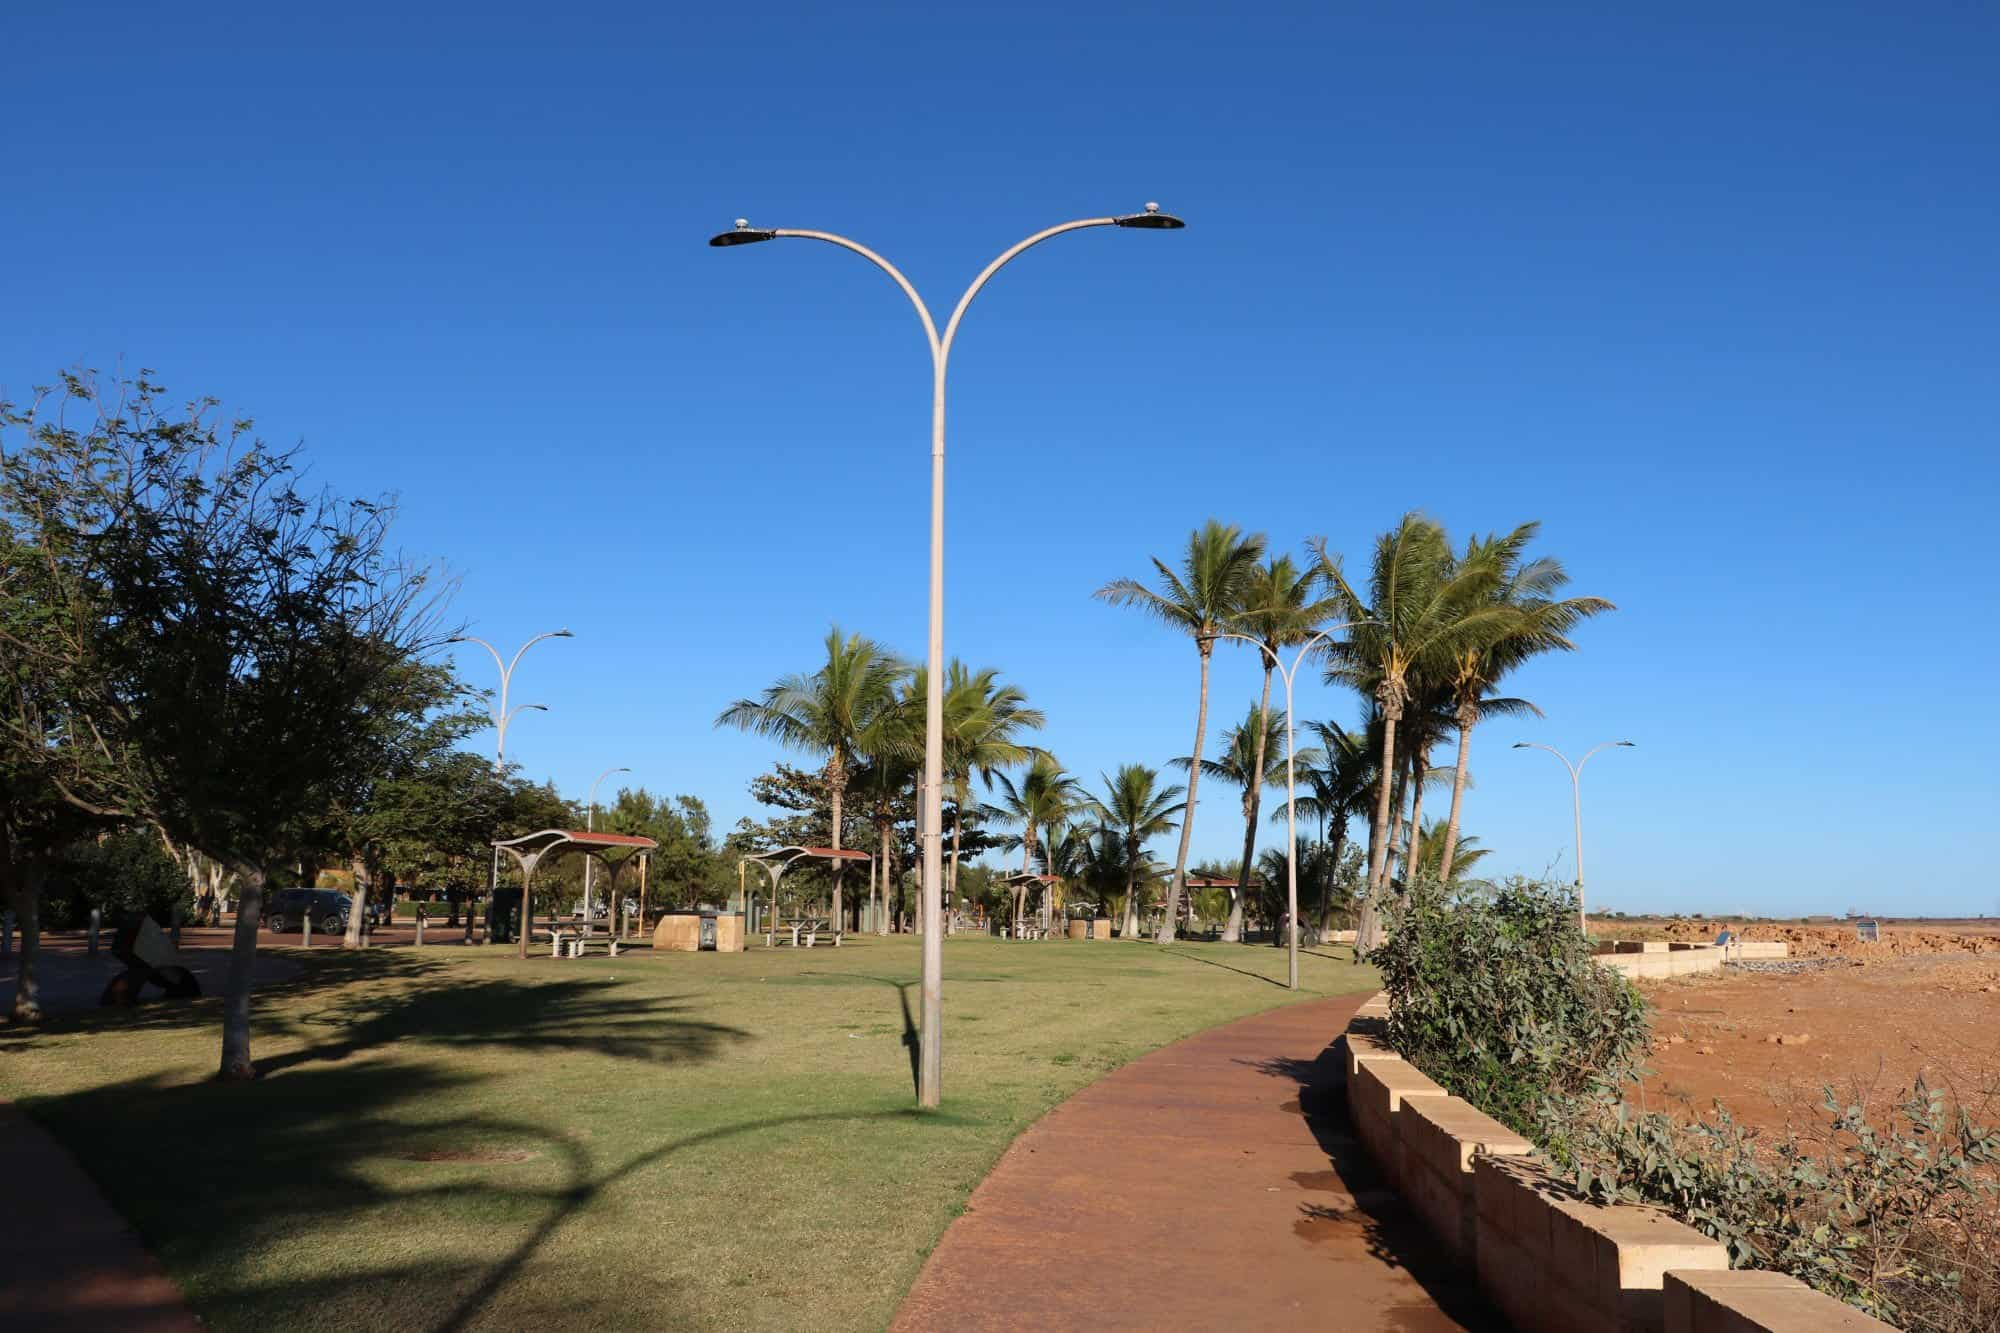 street lighting project at port hedland WA